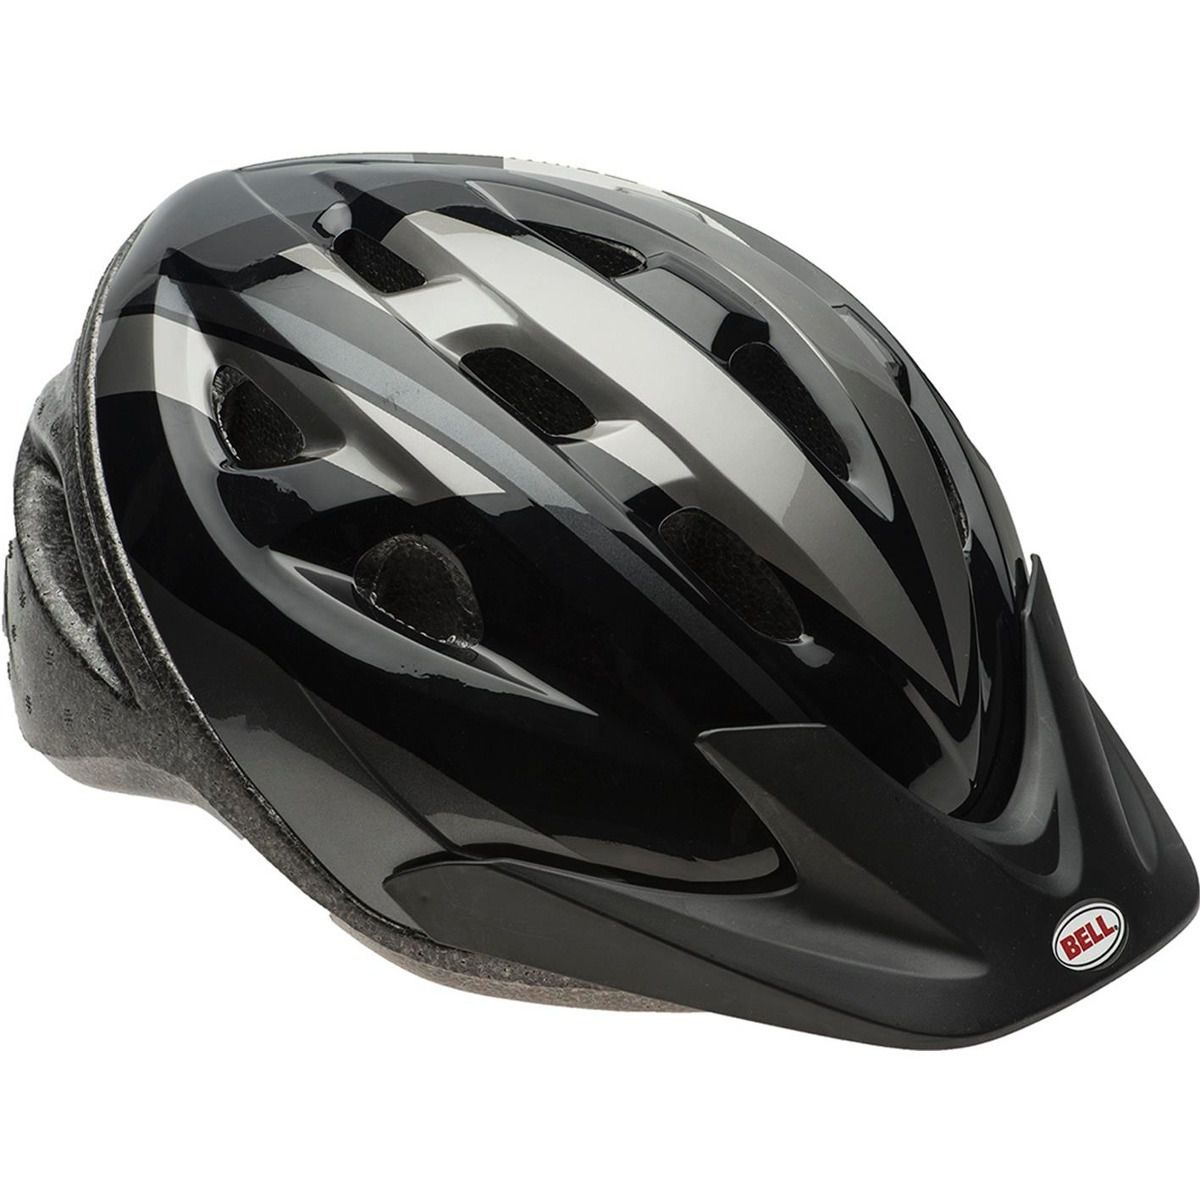 Capacete Bike Ciclismo Bell